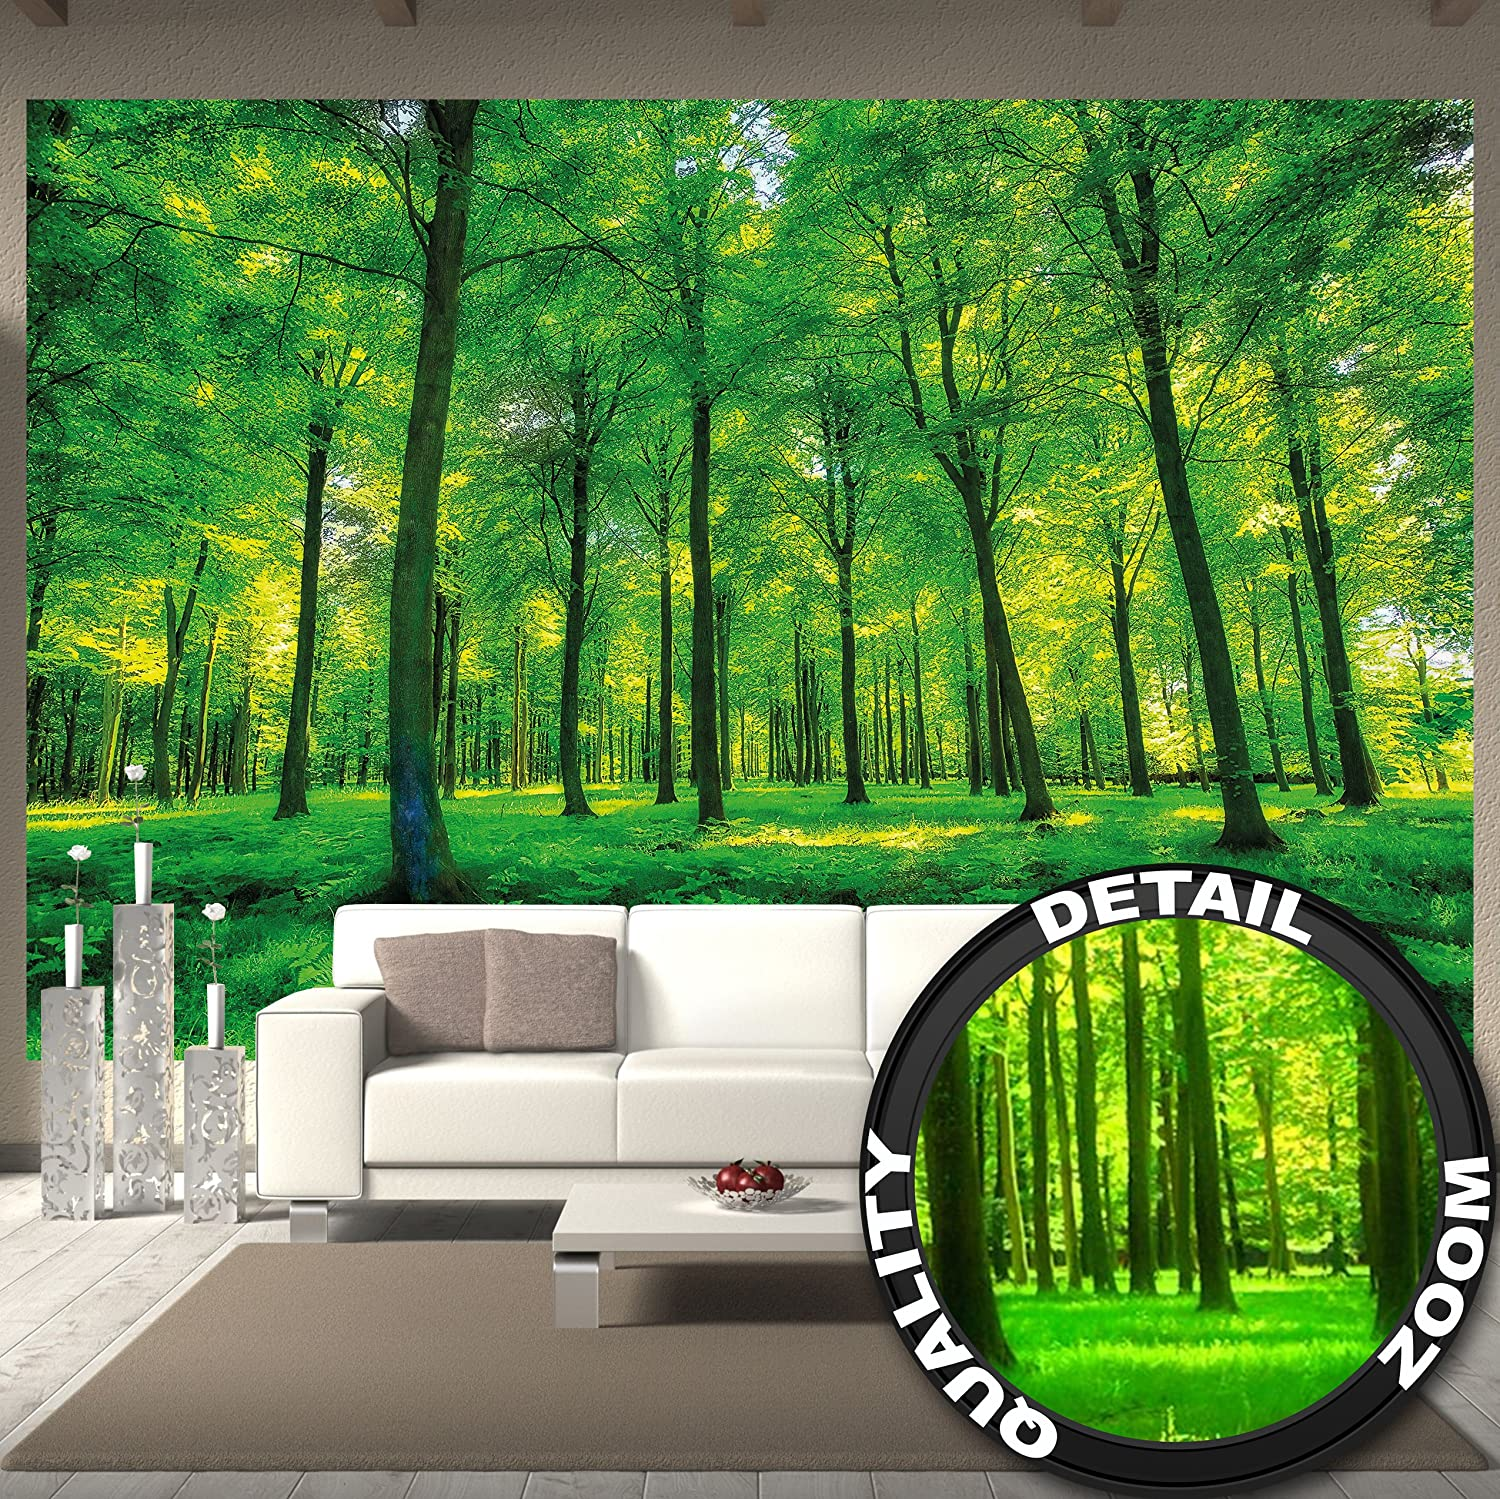 Wallpaper Trees wall picture decoration nature pure landscape forest glade summer relaxation sun plants flora forest ferns paperhanging Wallpaper poster wall decor by GREAT ART 132.3 Inch x 93.7 Inch